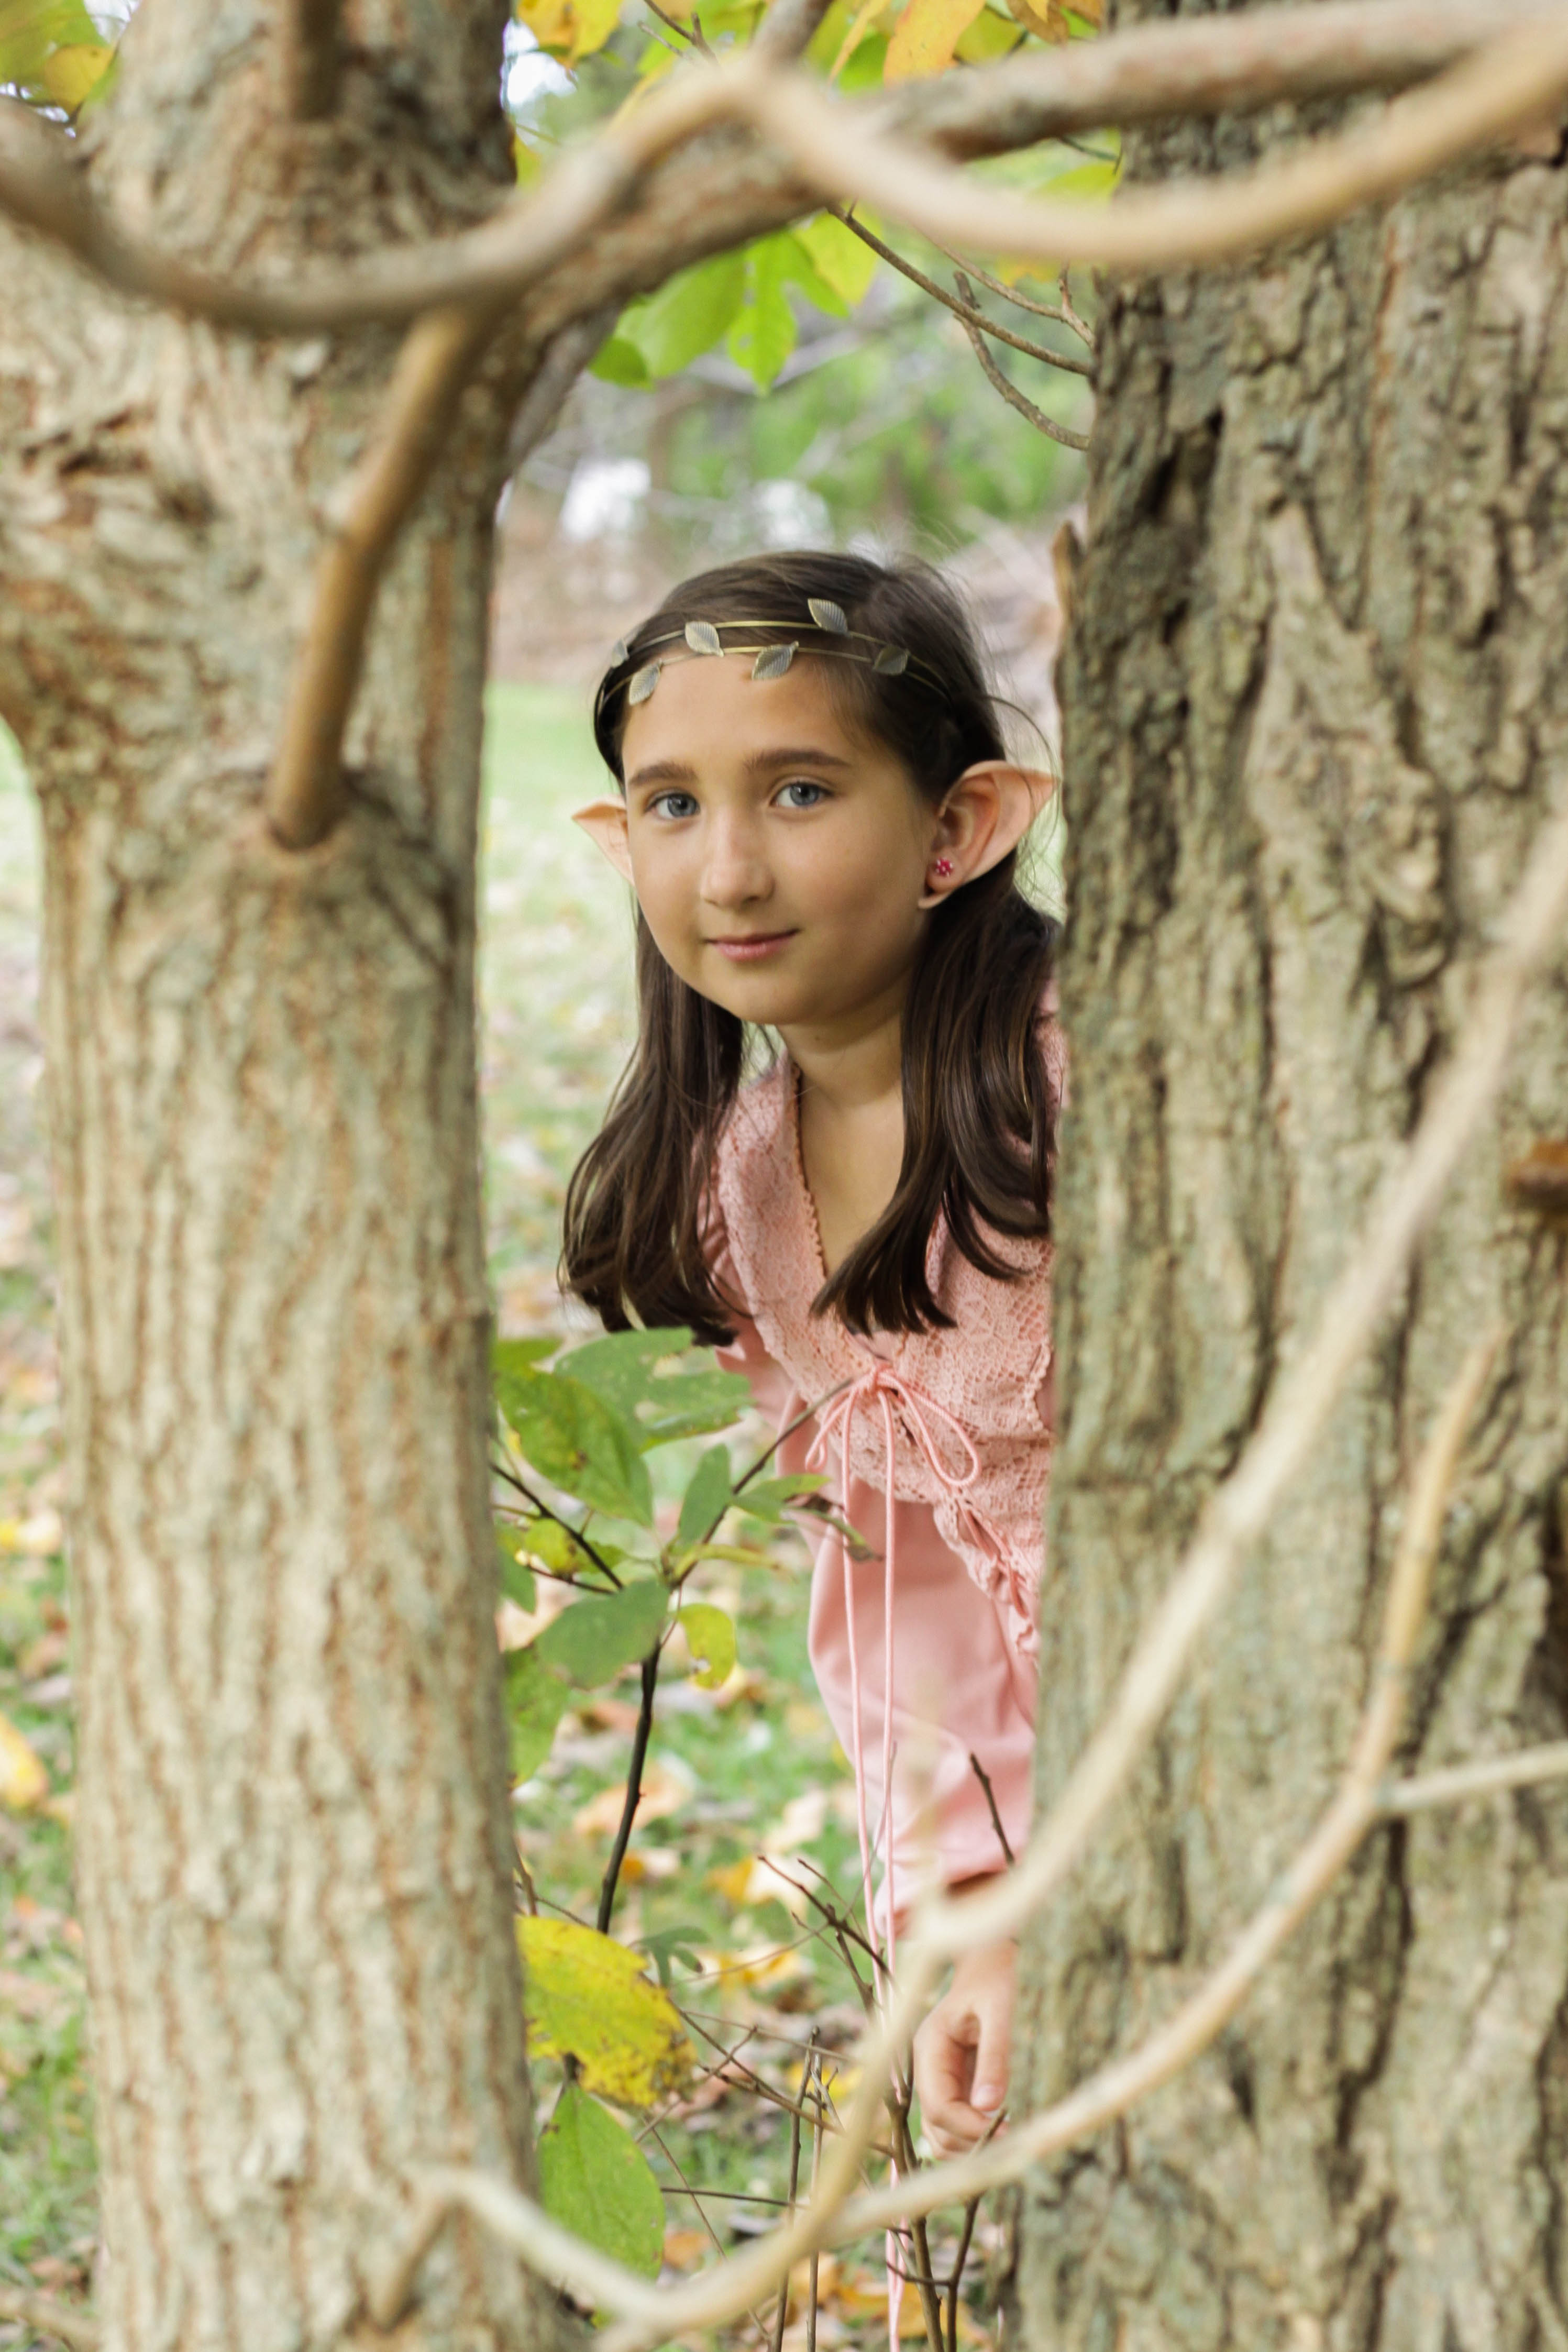 Magical Woodland Elf Costume like Lord of the Rings or Zelda  sc 1 st  Cassie Bustamante & Last Minute Easy Elf Halloween Costume for Girls or Women - Cassie ...